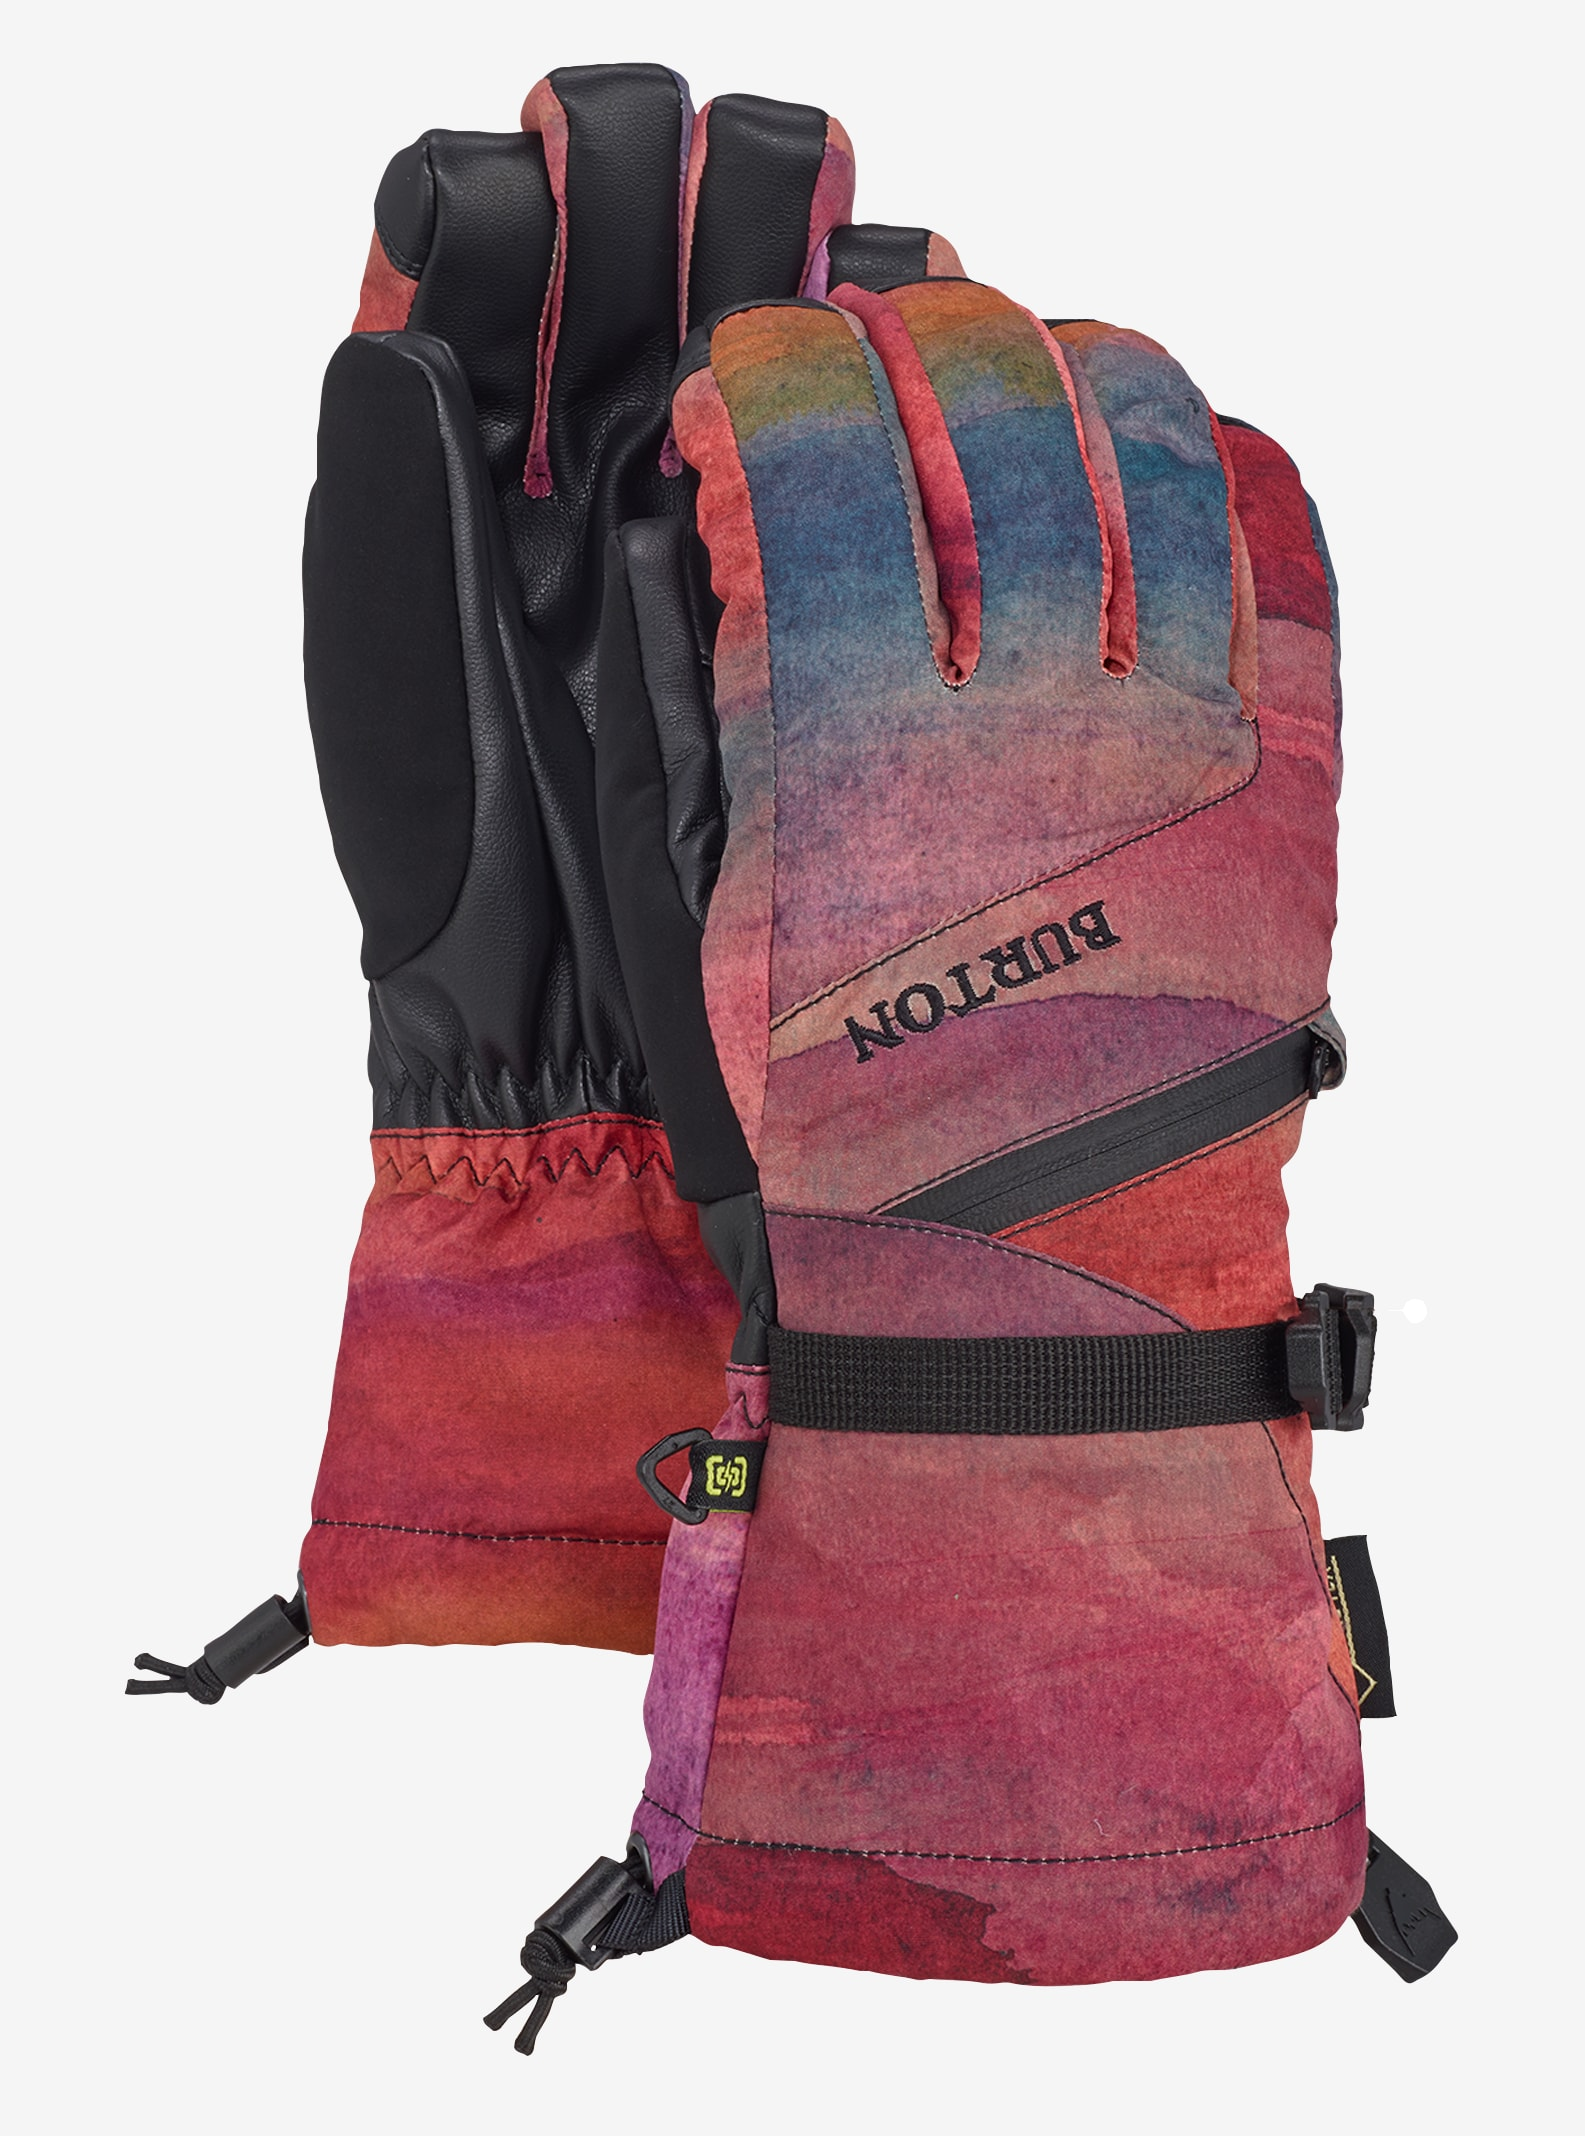 Women's Burton GORE-TEX® Glove + Gore warm technology shown in Sedona